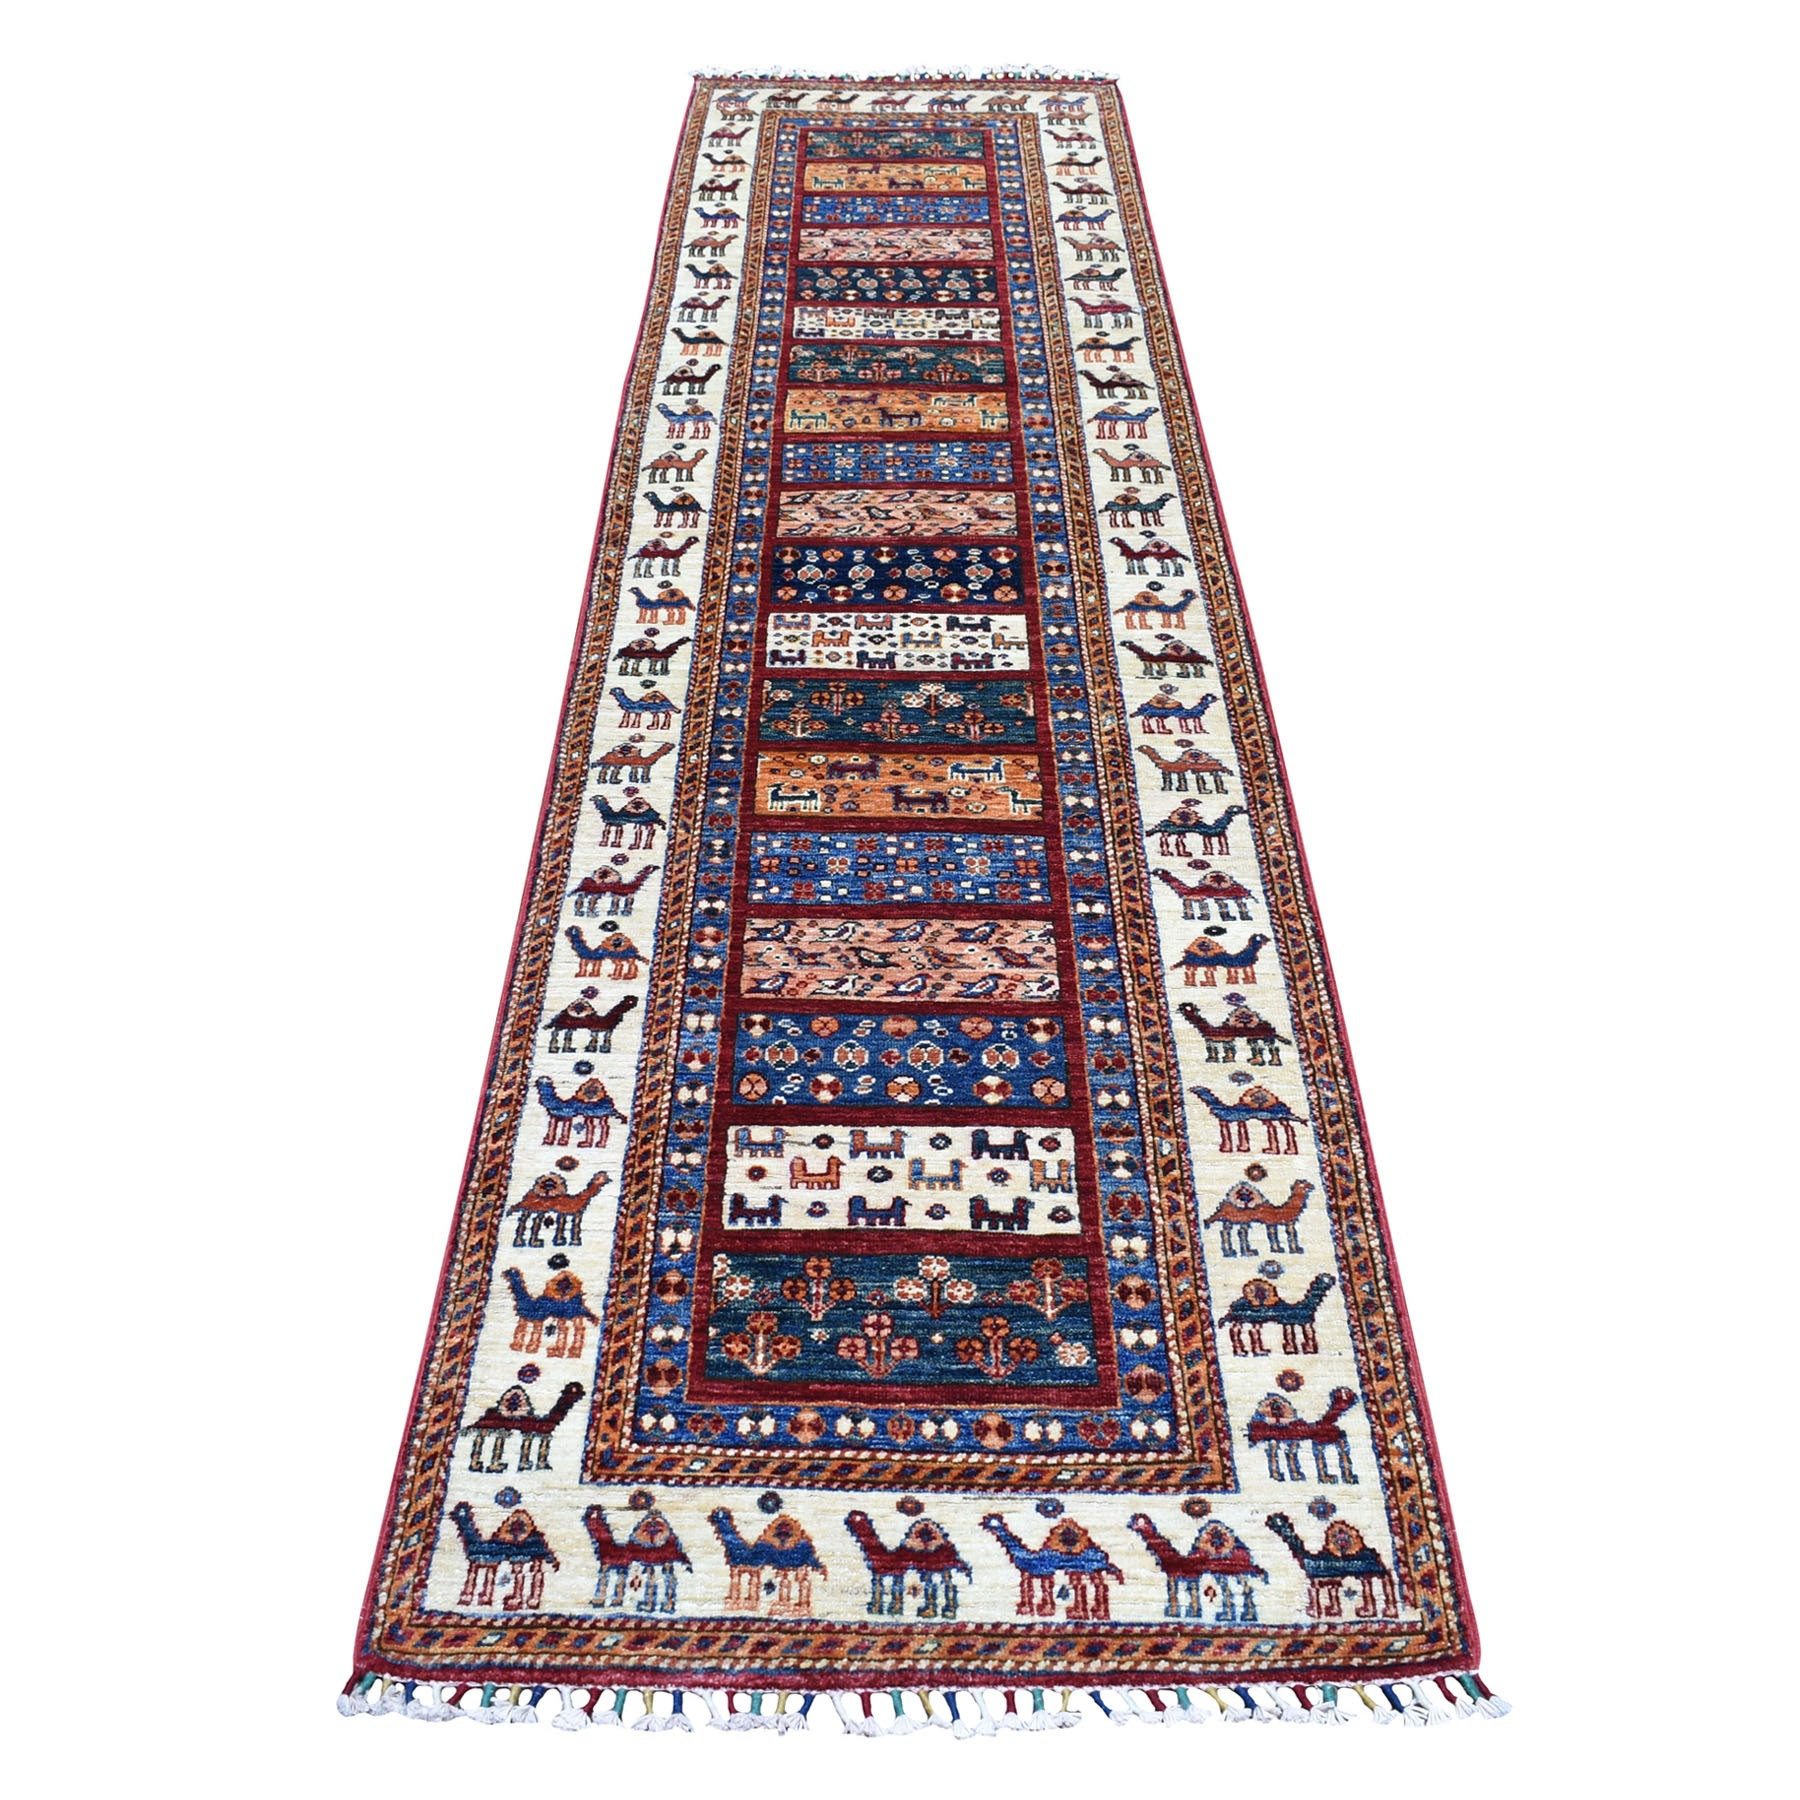 "2'7""x10' Khorjin Design Colorful Runner Super Kazak Pure Wool Hand Woven Oriental Rug"